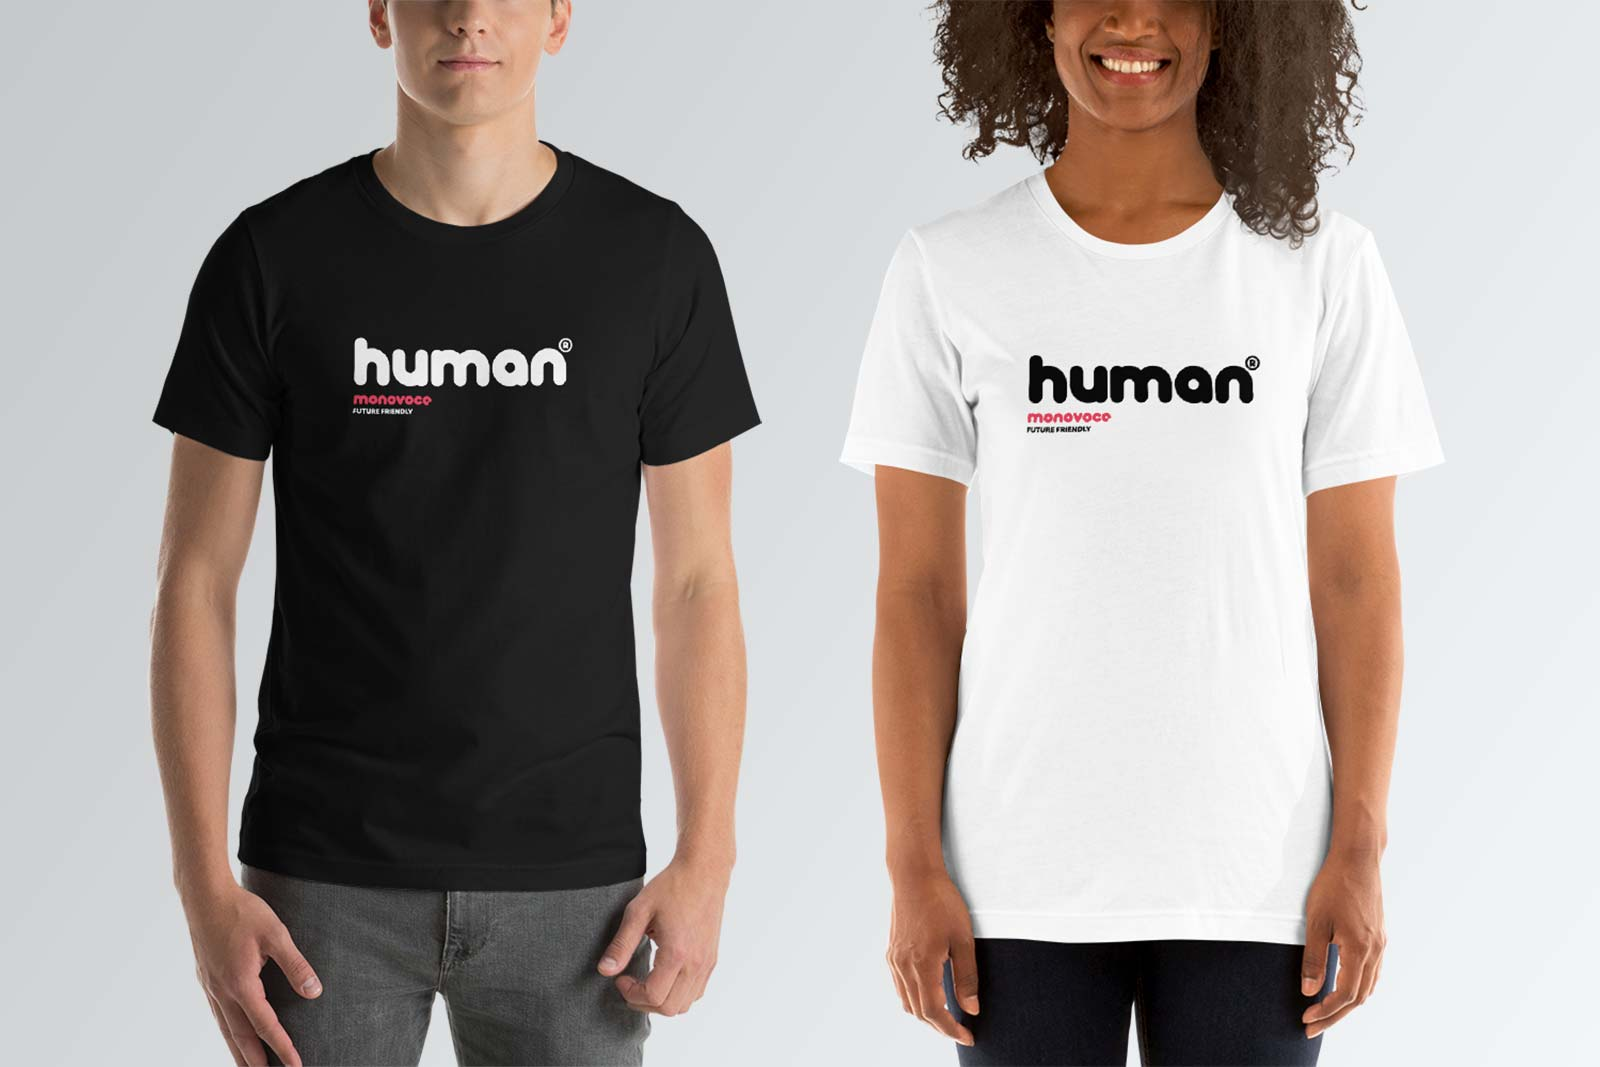 Human t-shirt for men in black and white